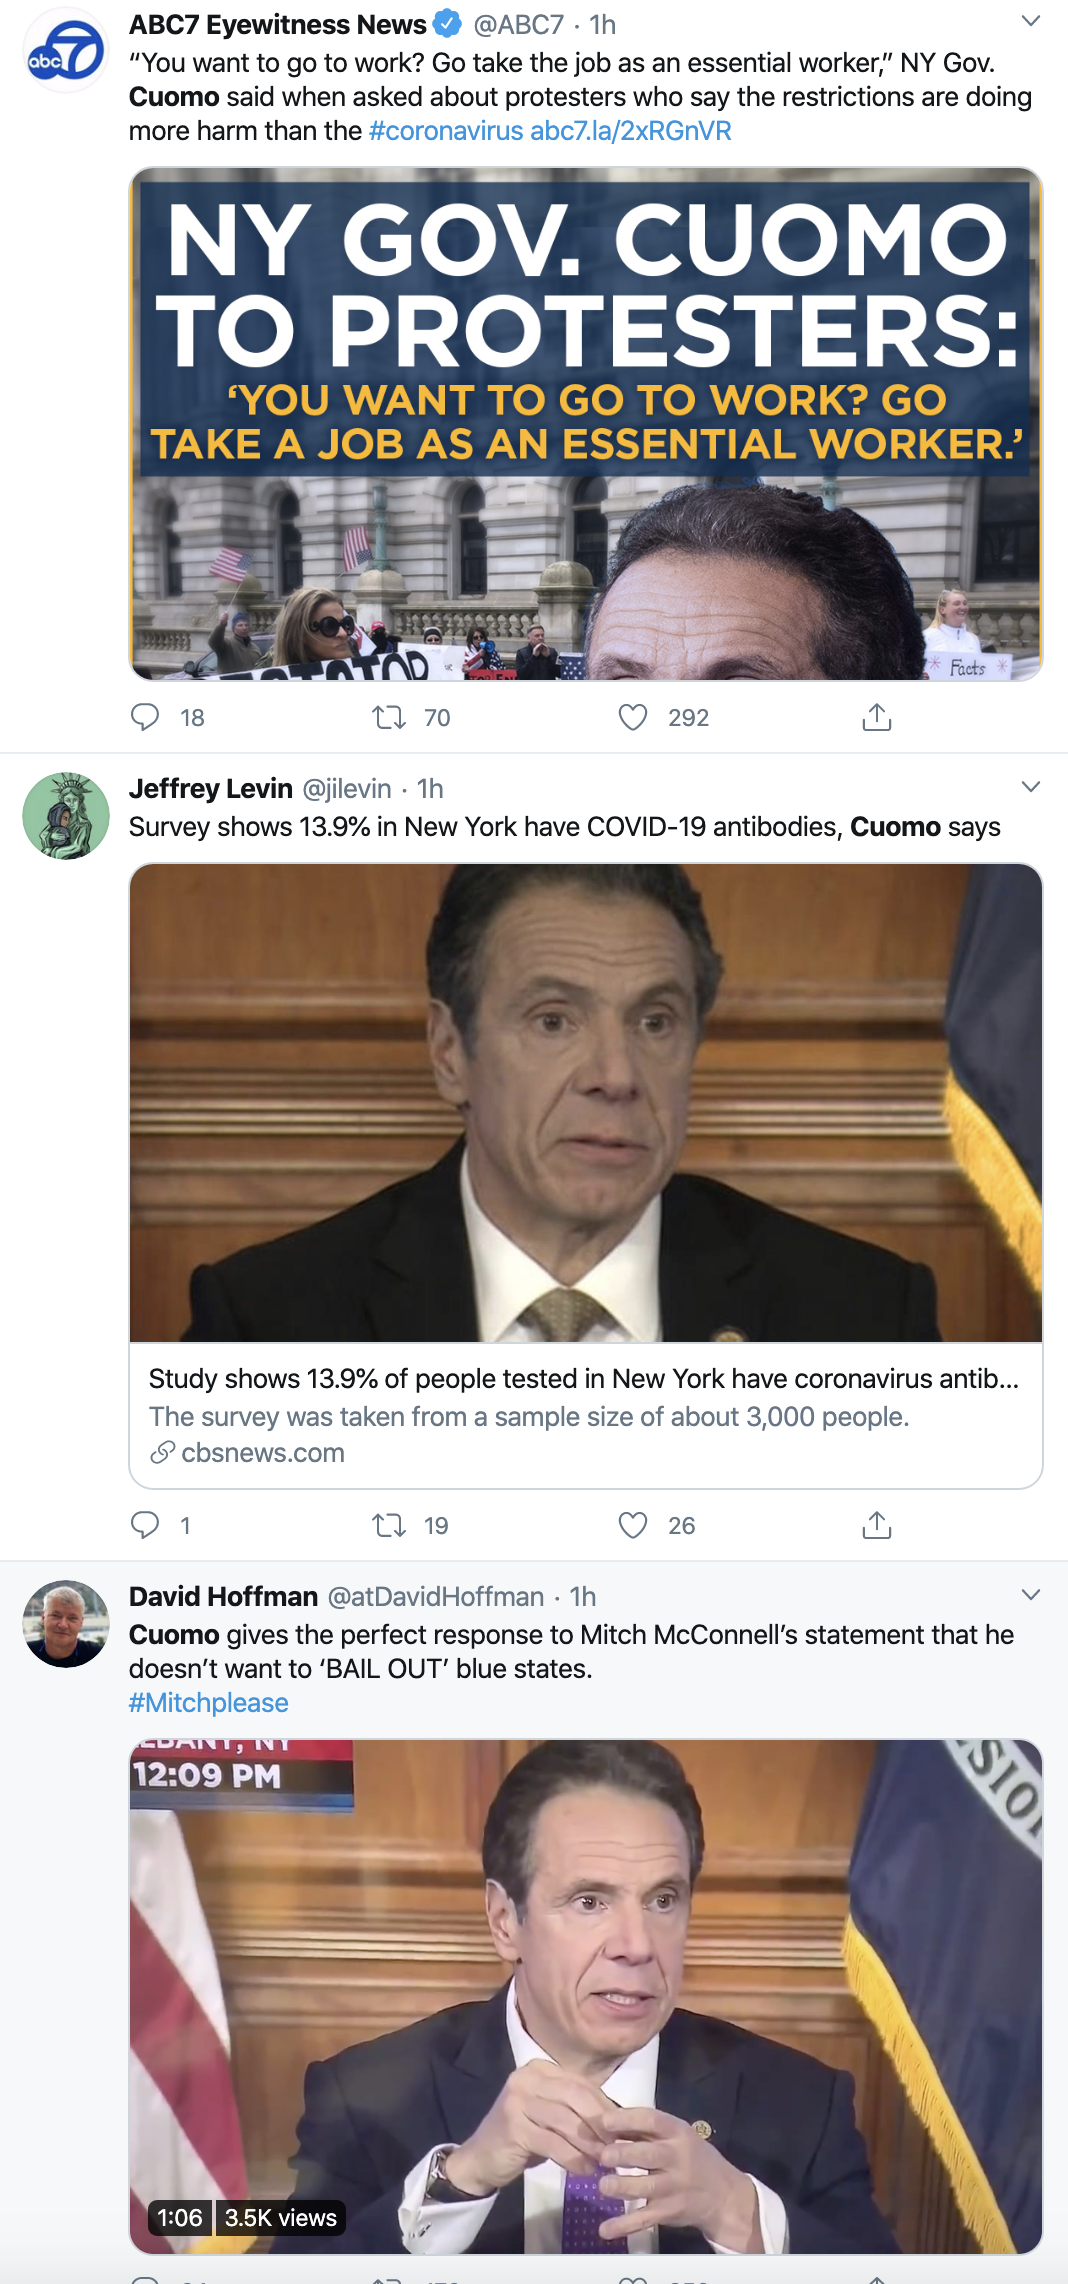 Screen-Shot-2020-04-23-at-1.17.38-PM McConnell Plans To Let States Sink Instead Of Rendering Aid Economy Featured Healthcare Politics Top Stories